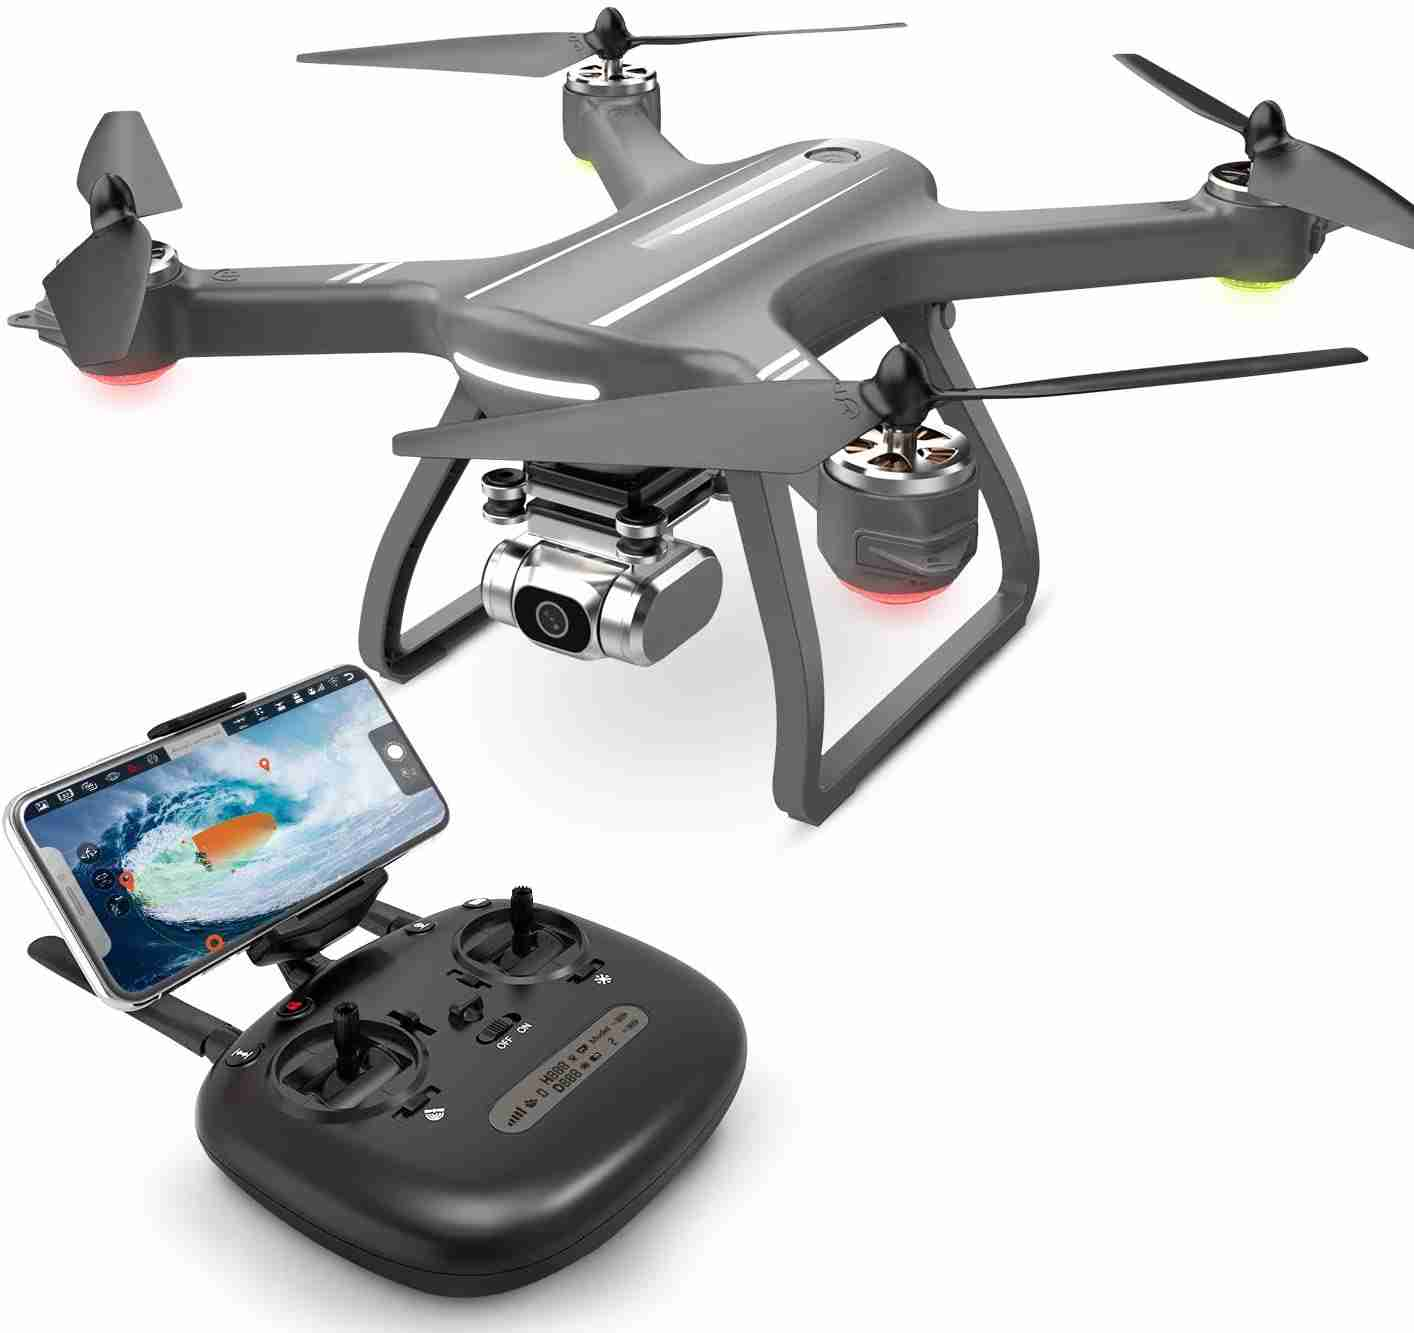 Eanling FPV Drone HS700D con videocamera